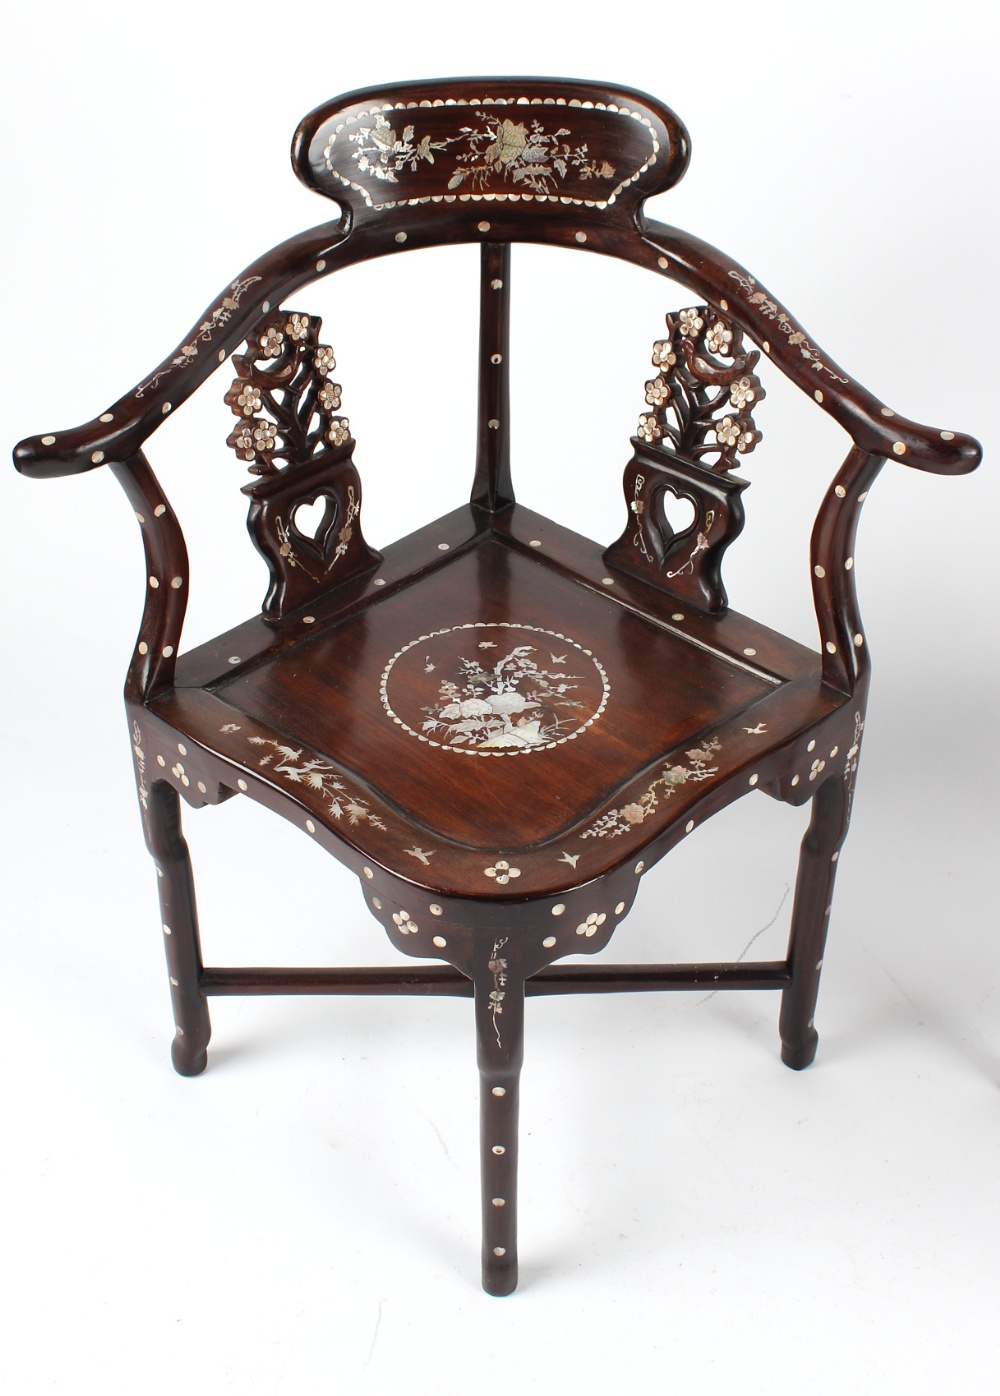 A pair of Chinese mother-of-pearl inlaid corner chairs (2). - Image 3 of 3